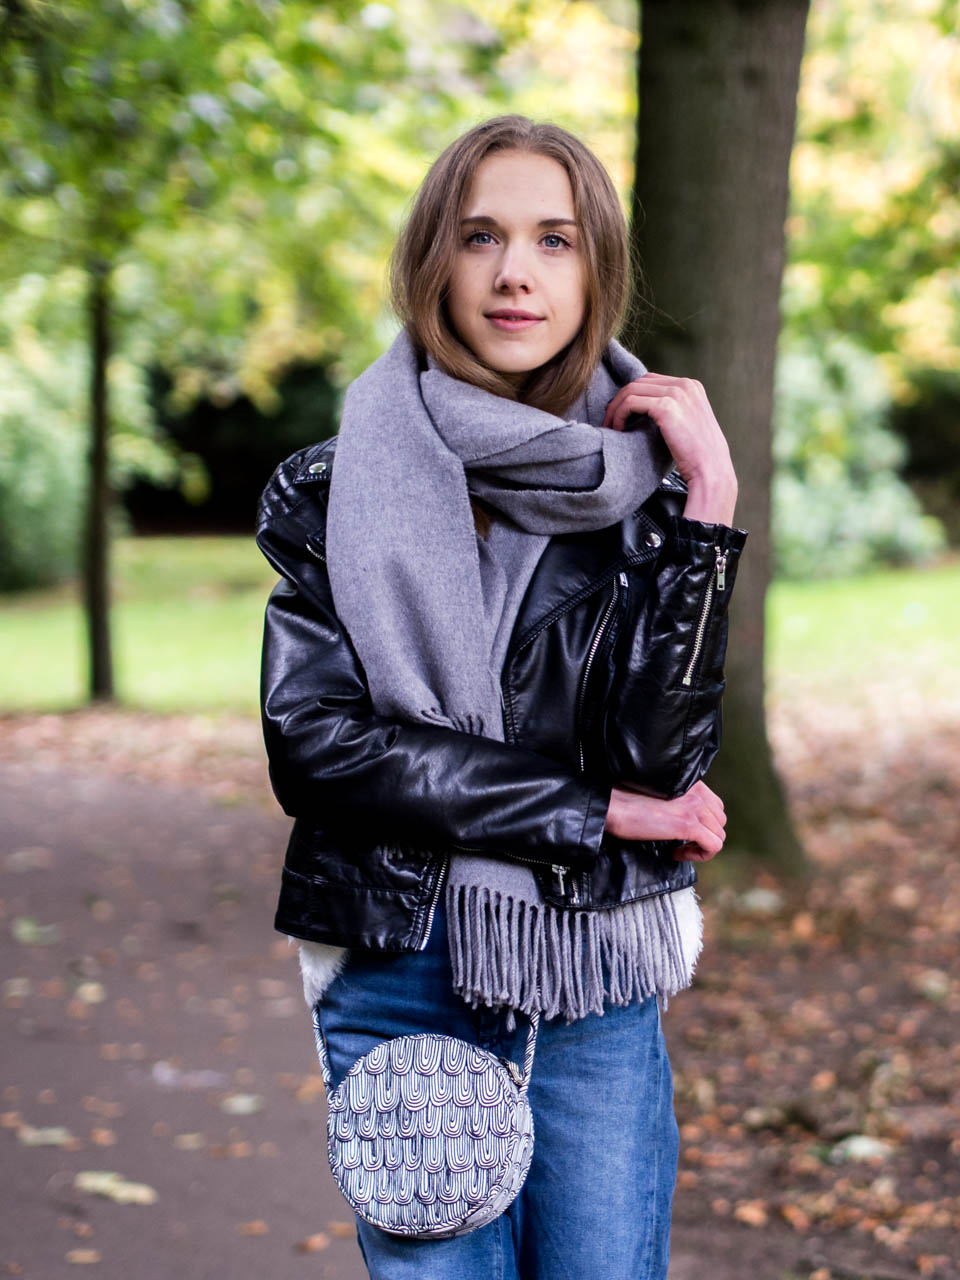 style-on-a-budget-high-street-shopping-guide-fashion-blogger